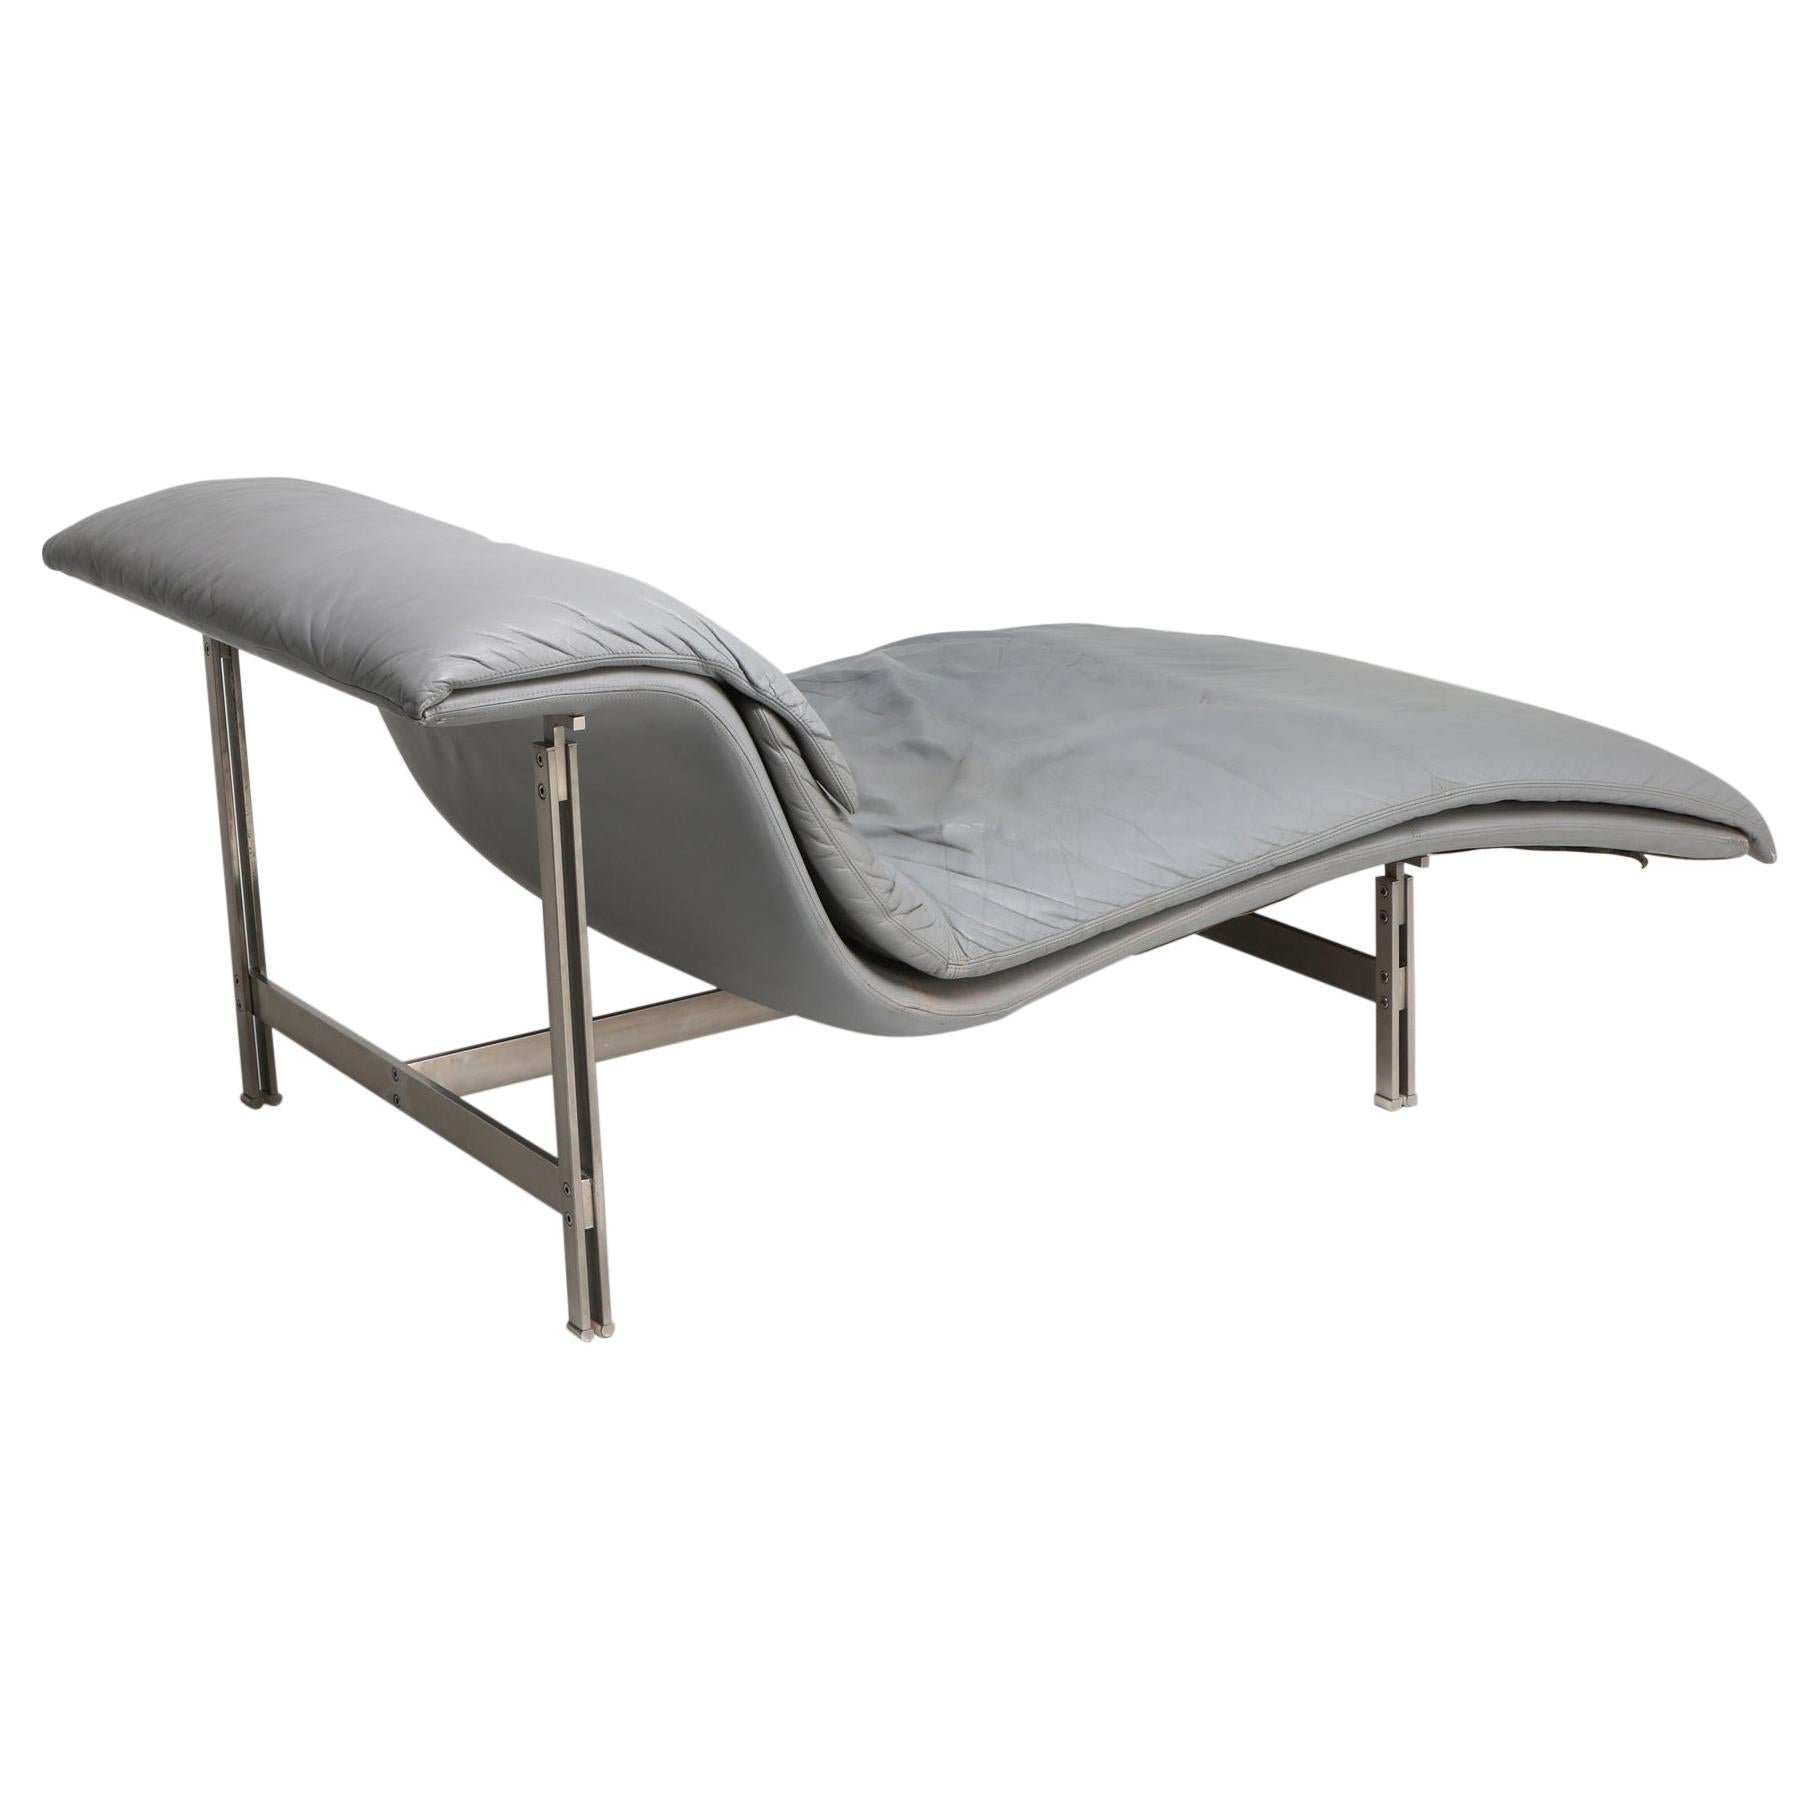 Saporiti 'the Wave' Lounge Chair in Grey Leather by Giovanni Offredi